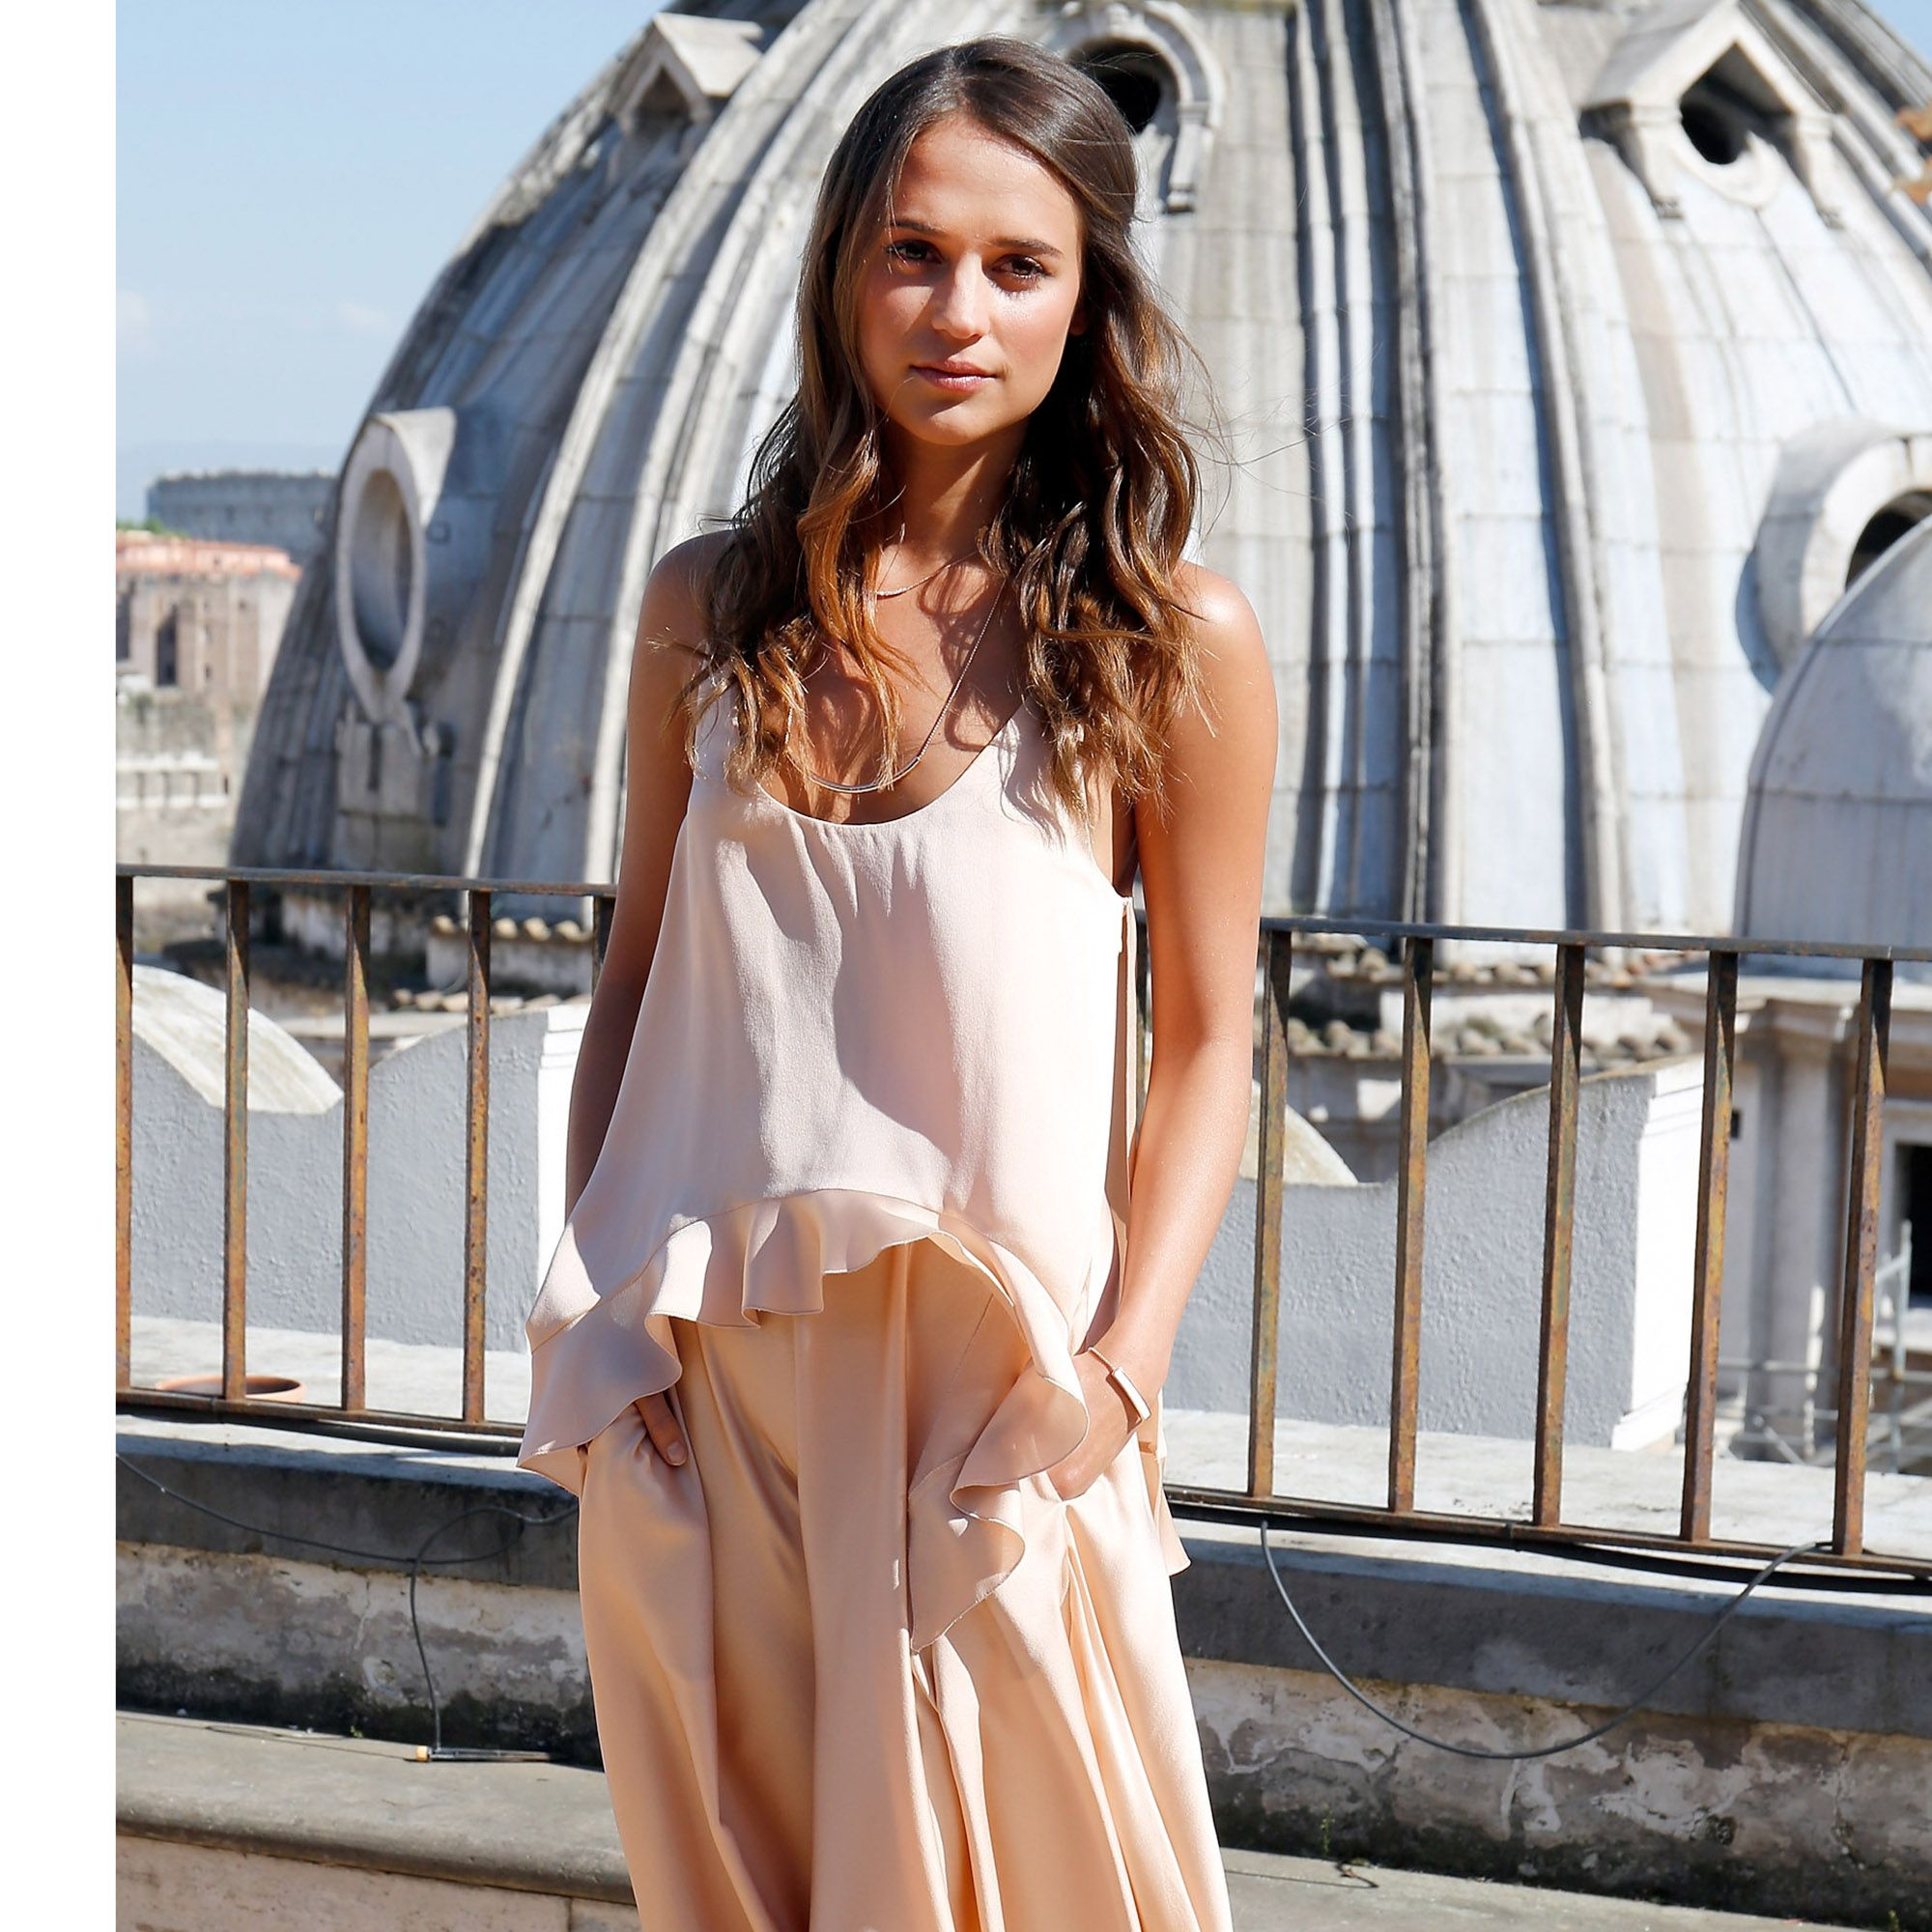 ROME, ITALY - MAY 09:  Alicia Vikander attends 'The Man From U.N.C.L.E.'  Photocall at Terrazza Civita on May 9, 2015 in Rome, Italy.  (Photo by Elisabetta A. Villa/Getty Images)